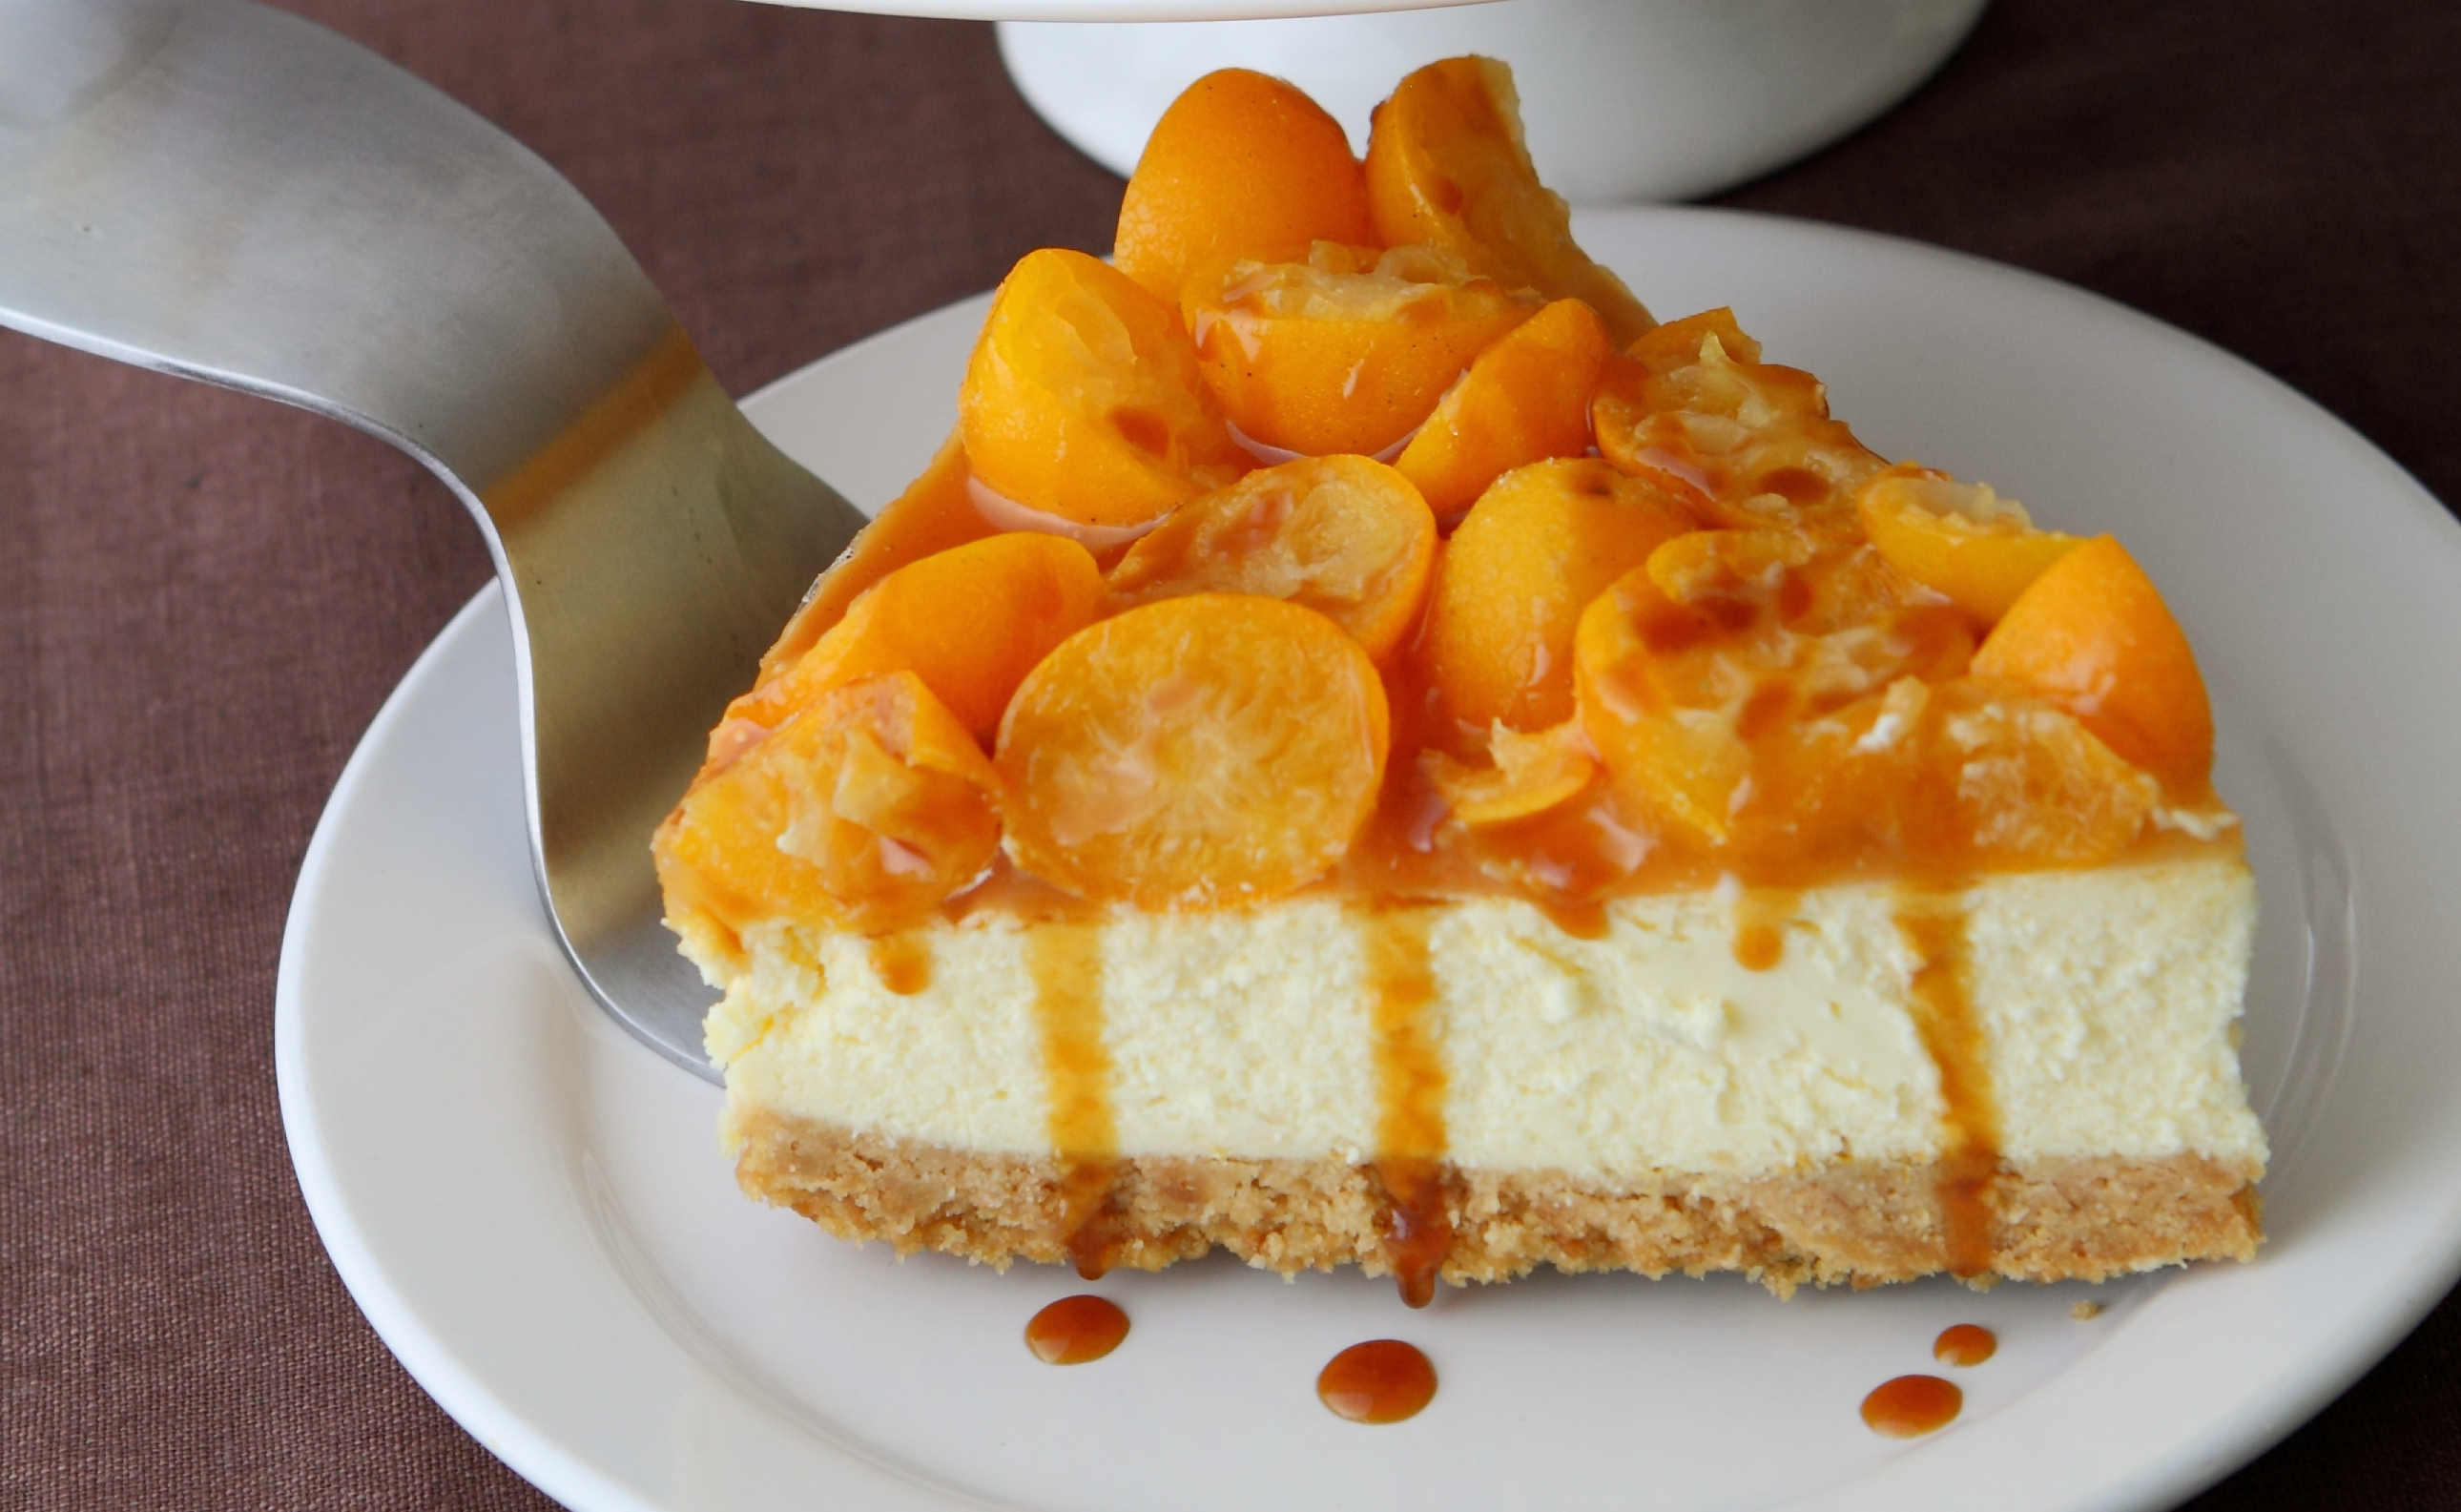 Kumquat Baked Cheesecake with Coconut Caramel